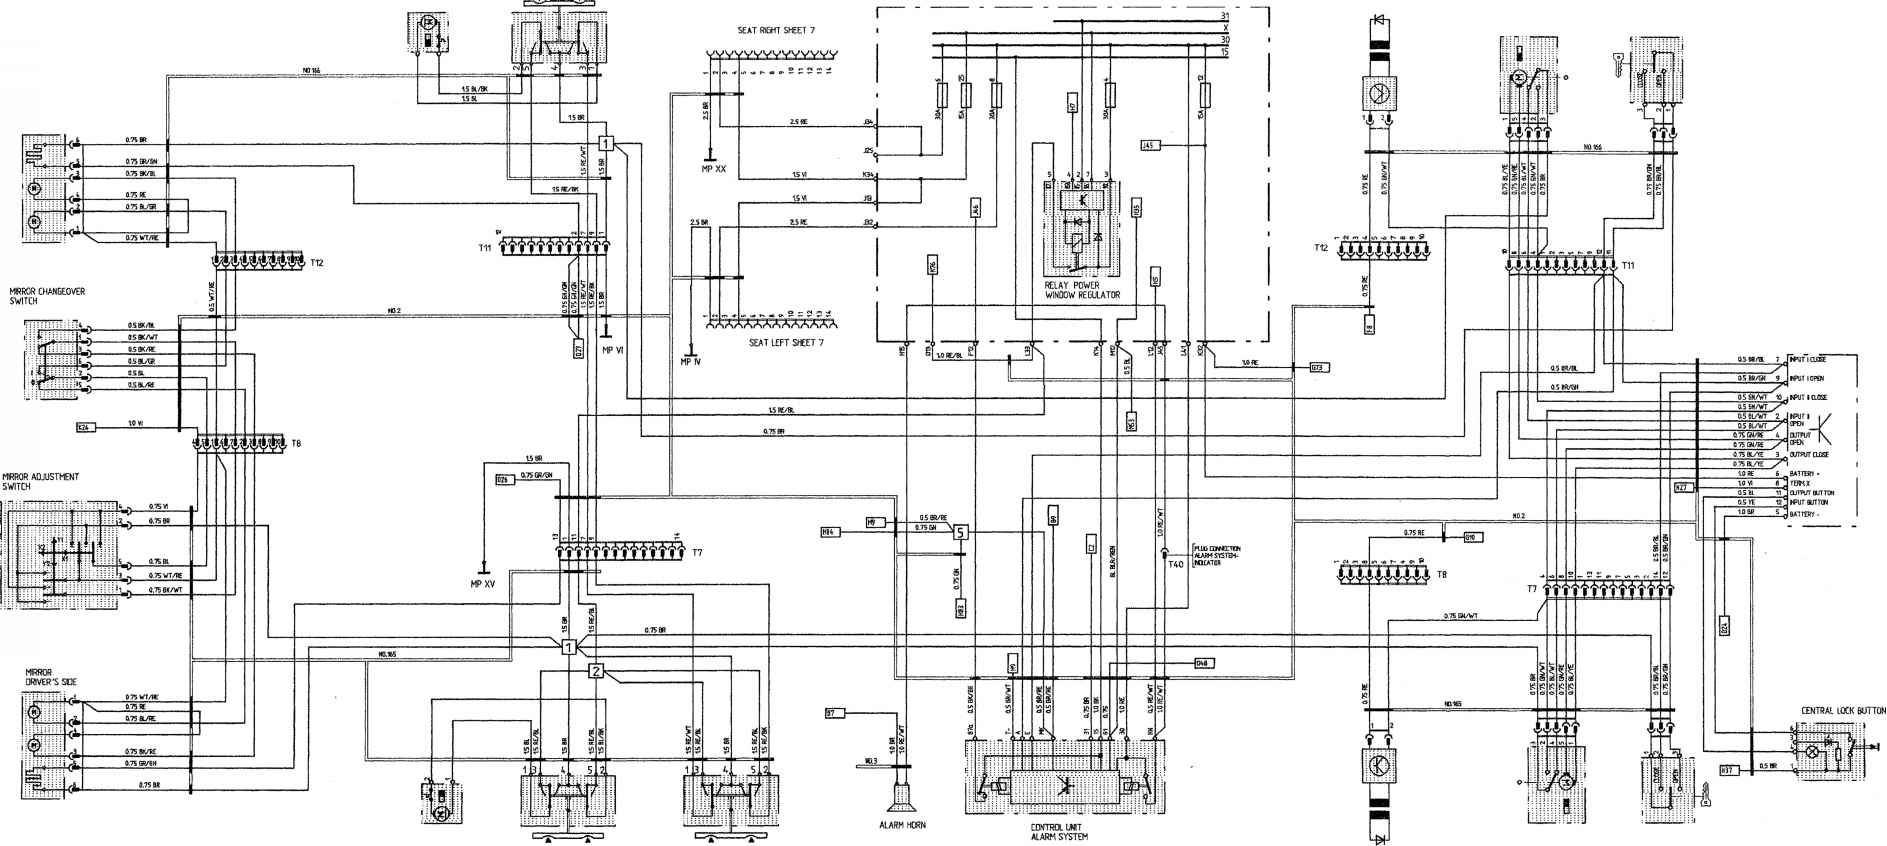 Wiring Diagram For Polaris Sportsman 500 Powerking